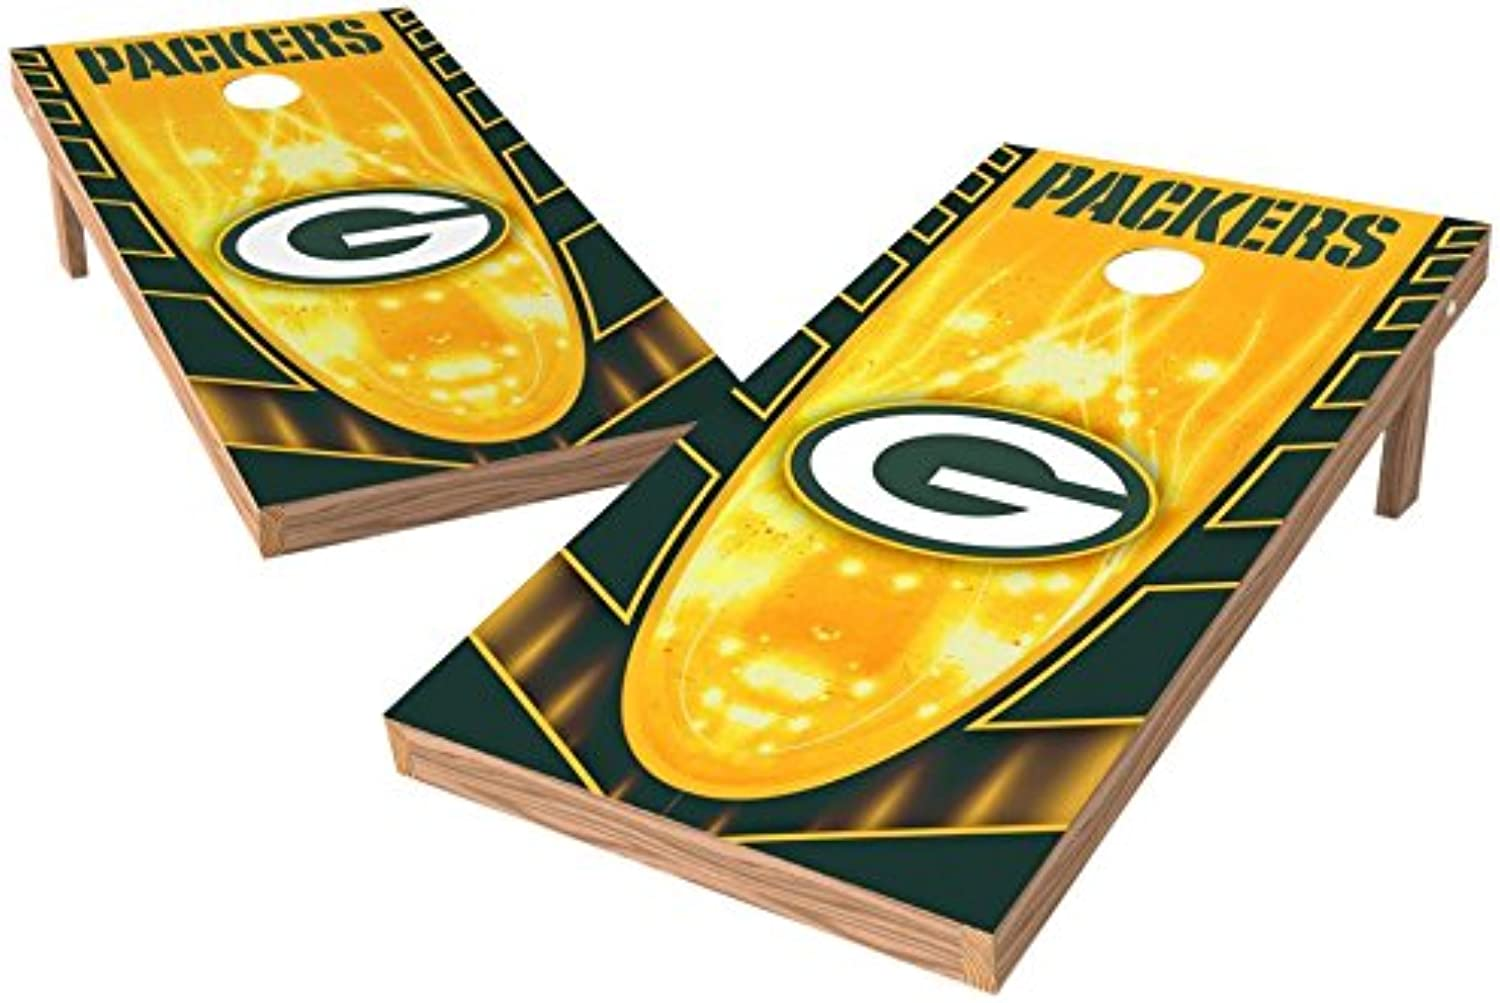 PROLINE NFL 2'x4' Cornhole Board Set with blueetooth Speakers Hot Design, Los Angeles Chargers(P4NSPK11161)